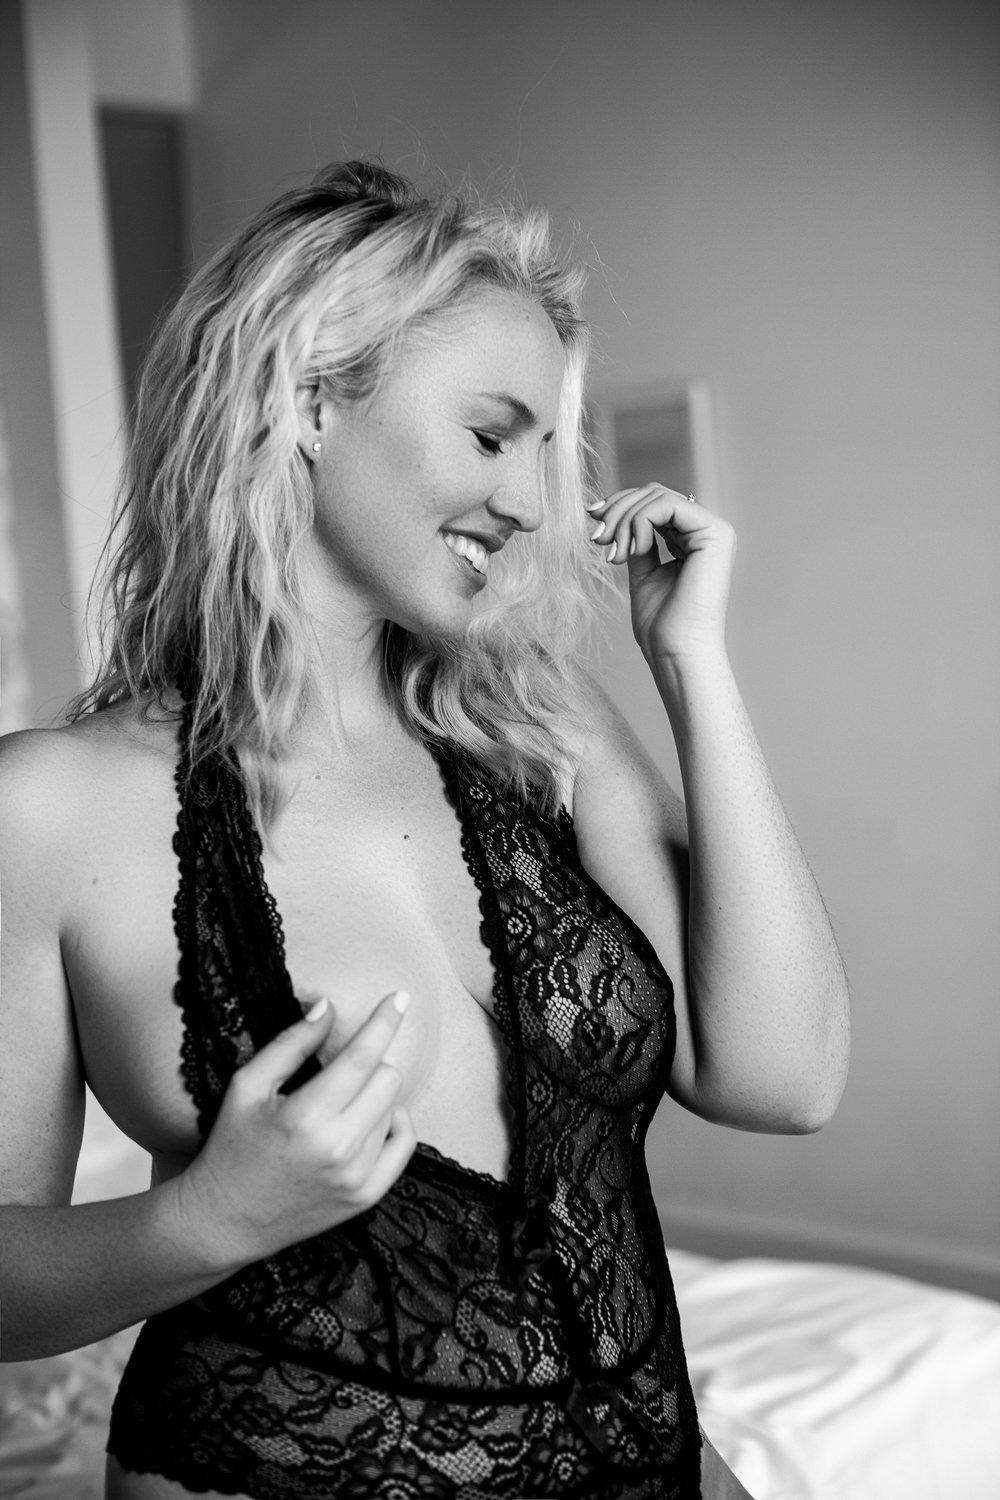 Lace-bodysuit-boudoir-image-brooklyn